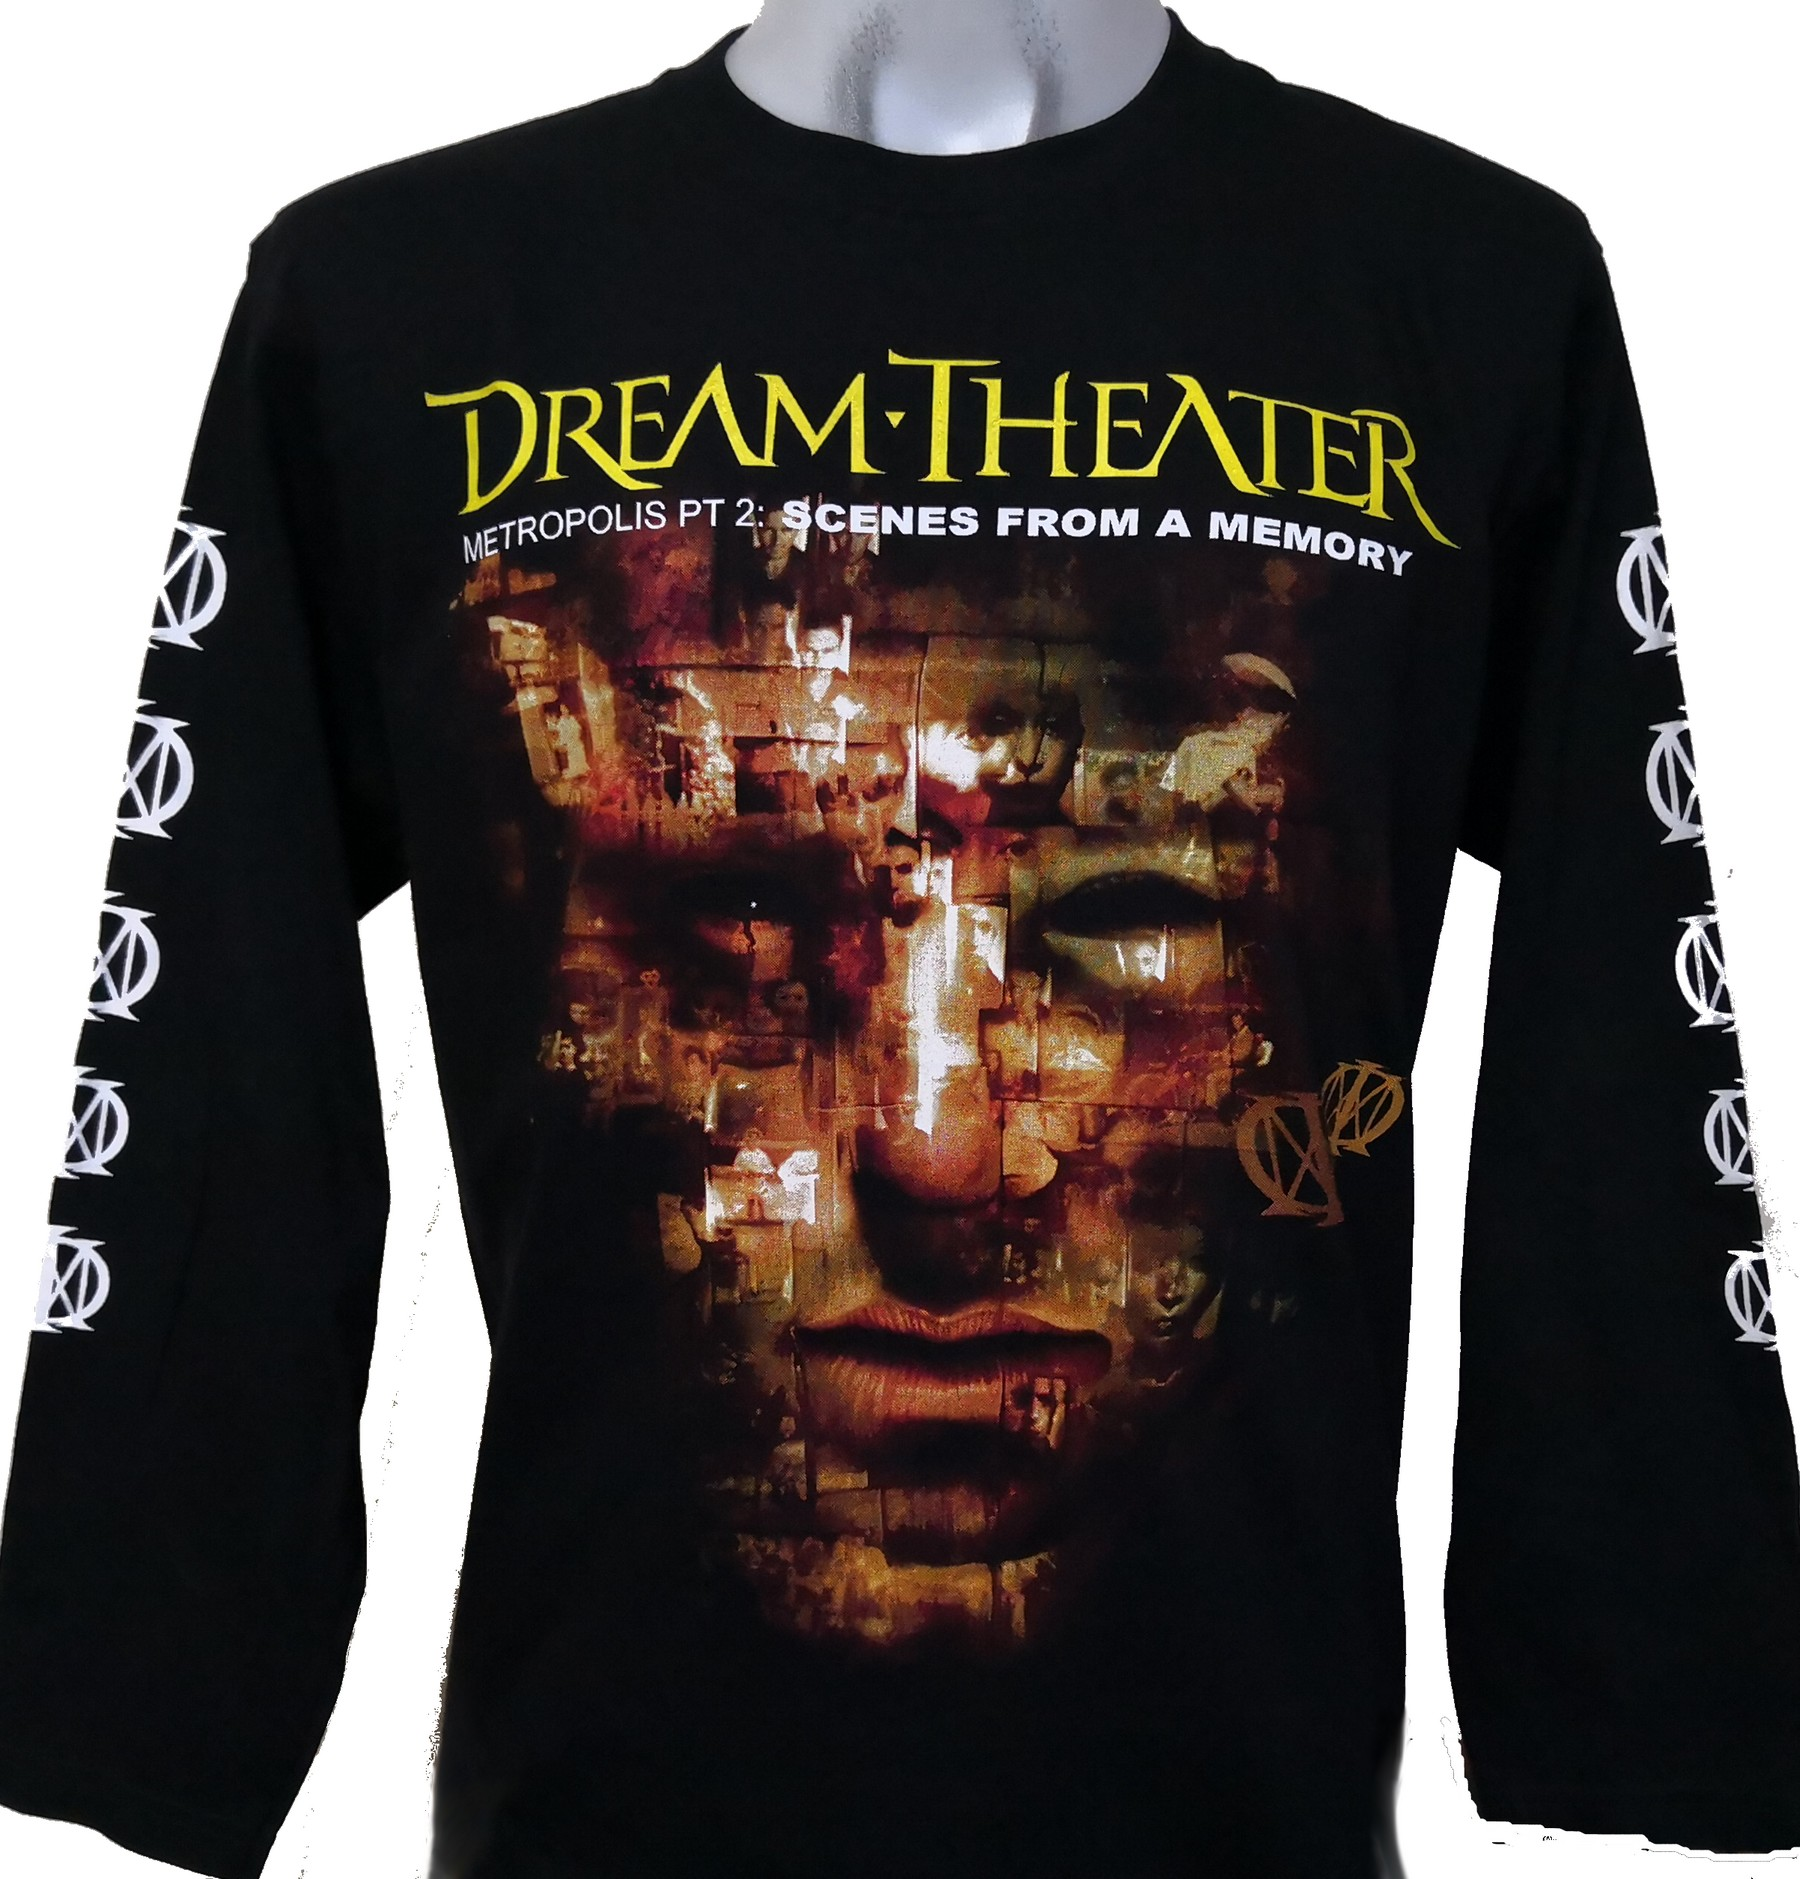 Dream Theater Long Sleeved T Shirt Metropolis Pt 2 Scenes From A Memory Size M Roxxbkk